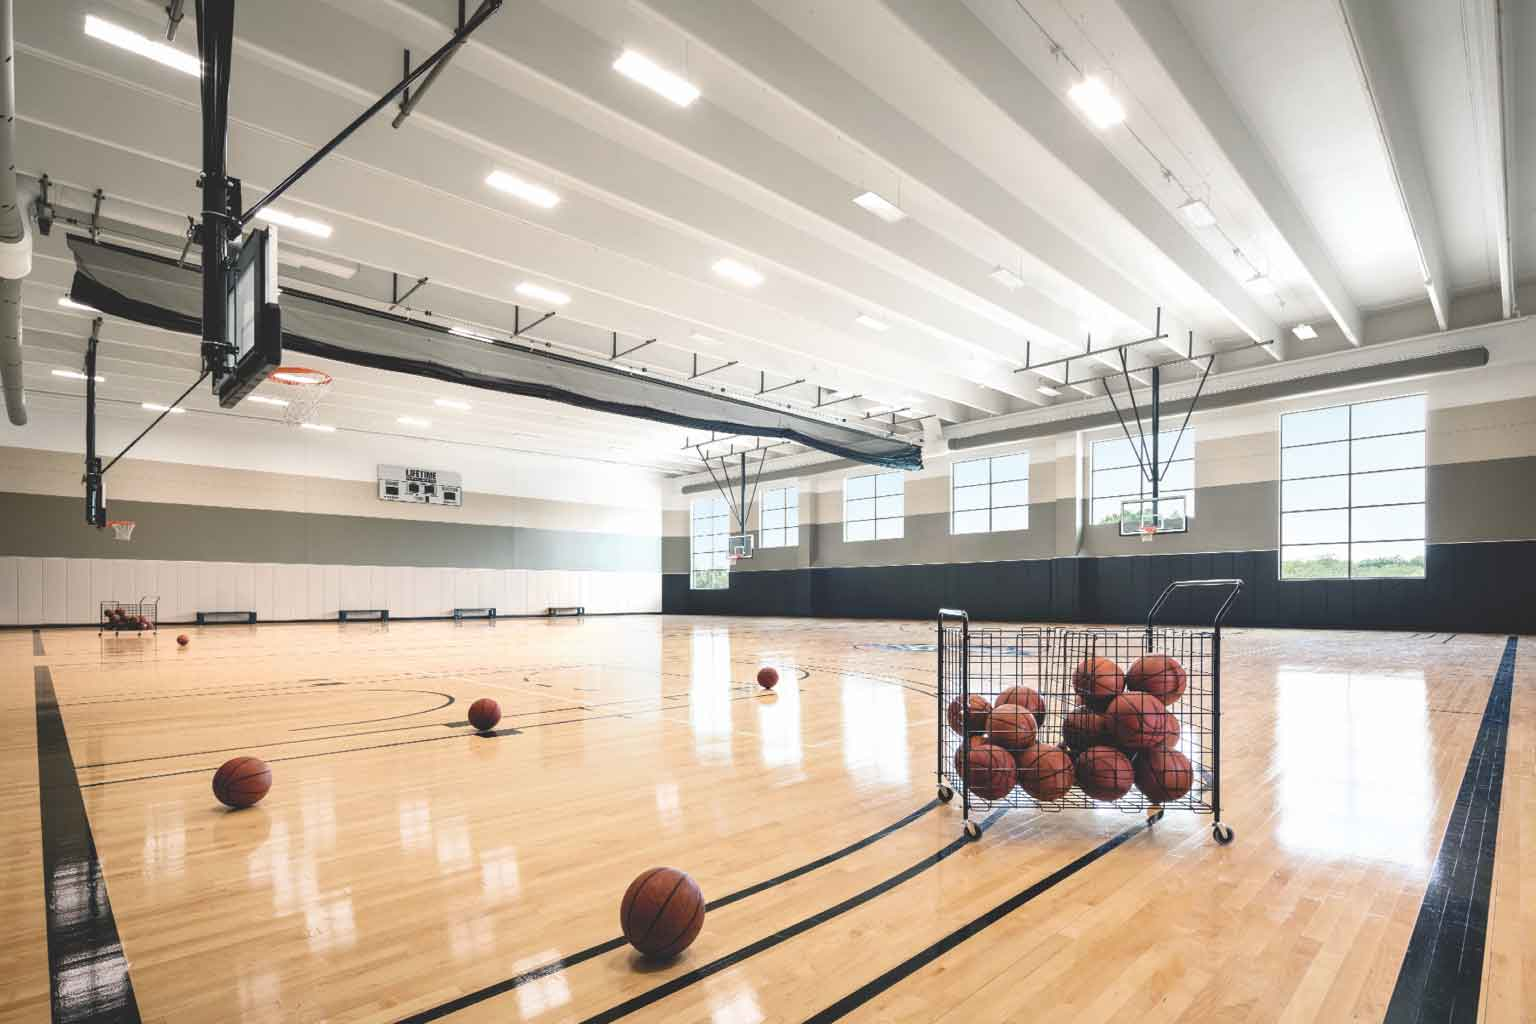 Life tim'es gymnasium equipped with basketballs and hoops